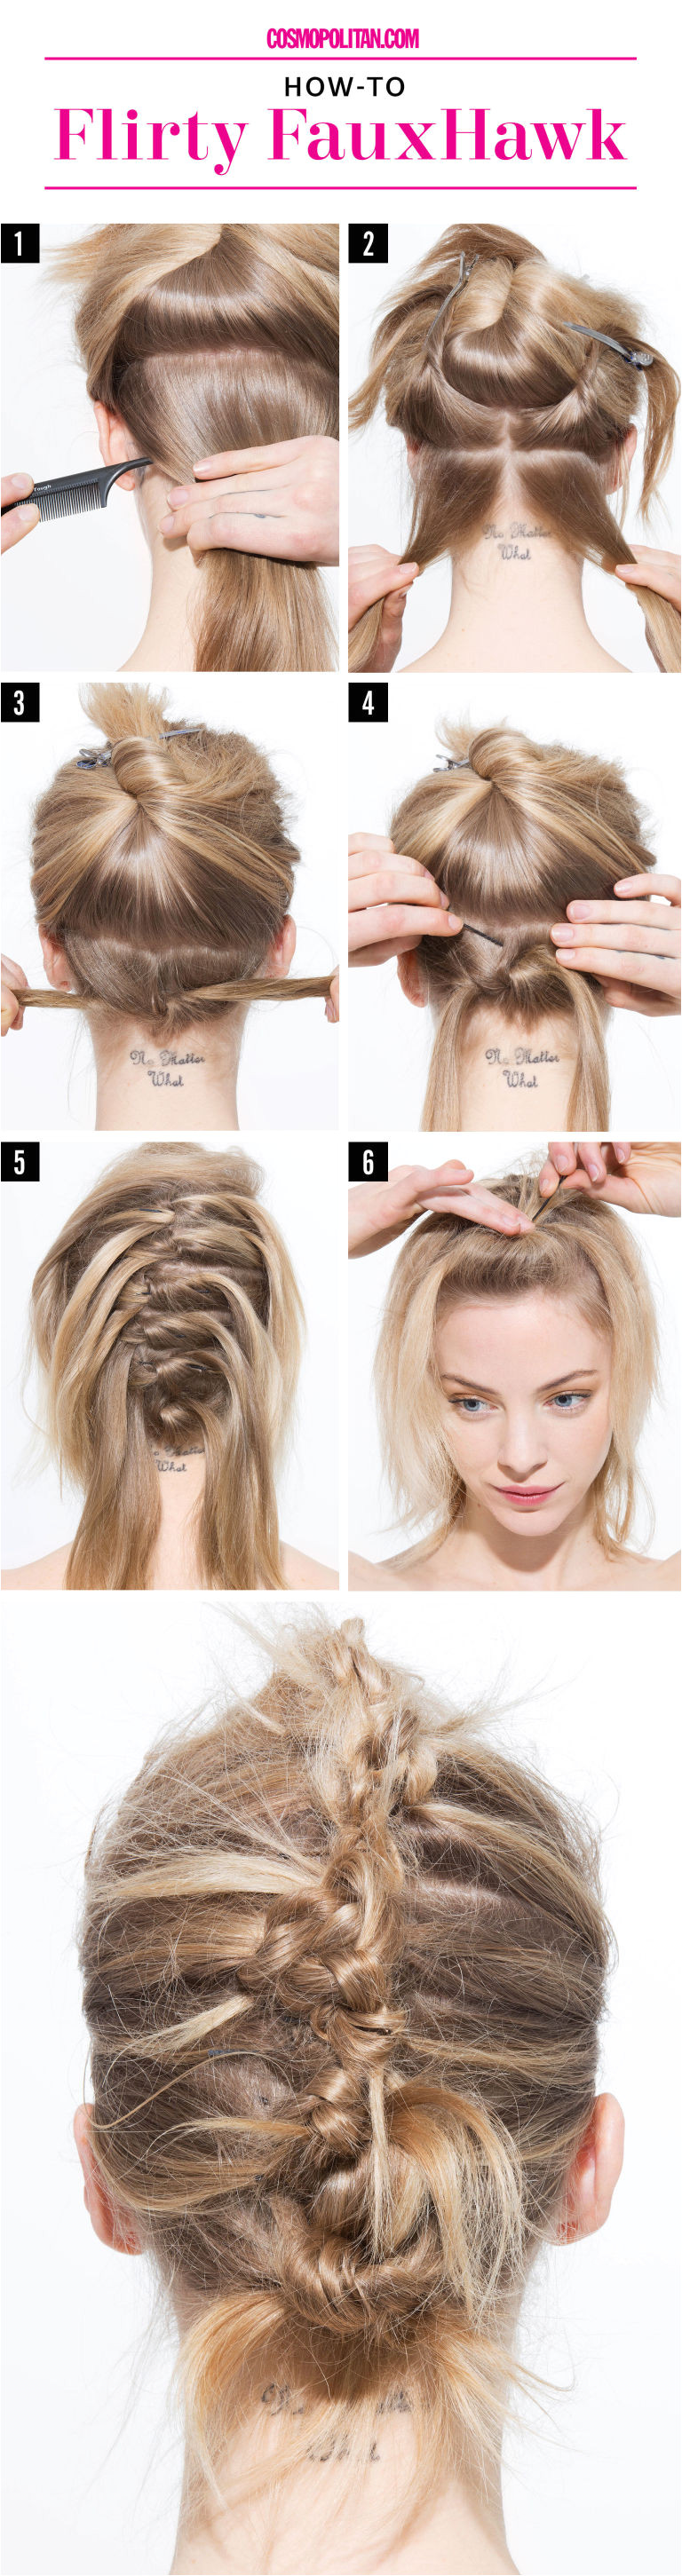 Easy Hairstyles that Don T Include Braids 4 Last Minute Diy evening Hairstyles that Will Leave You Looking Hot